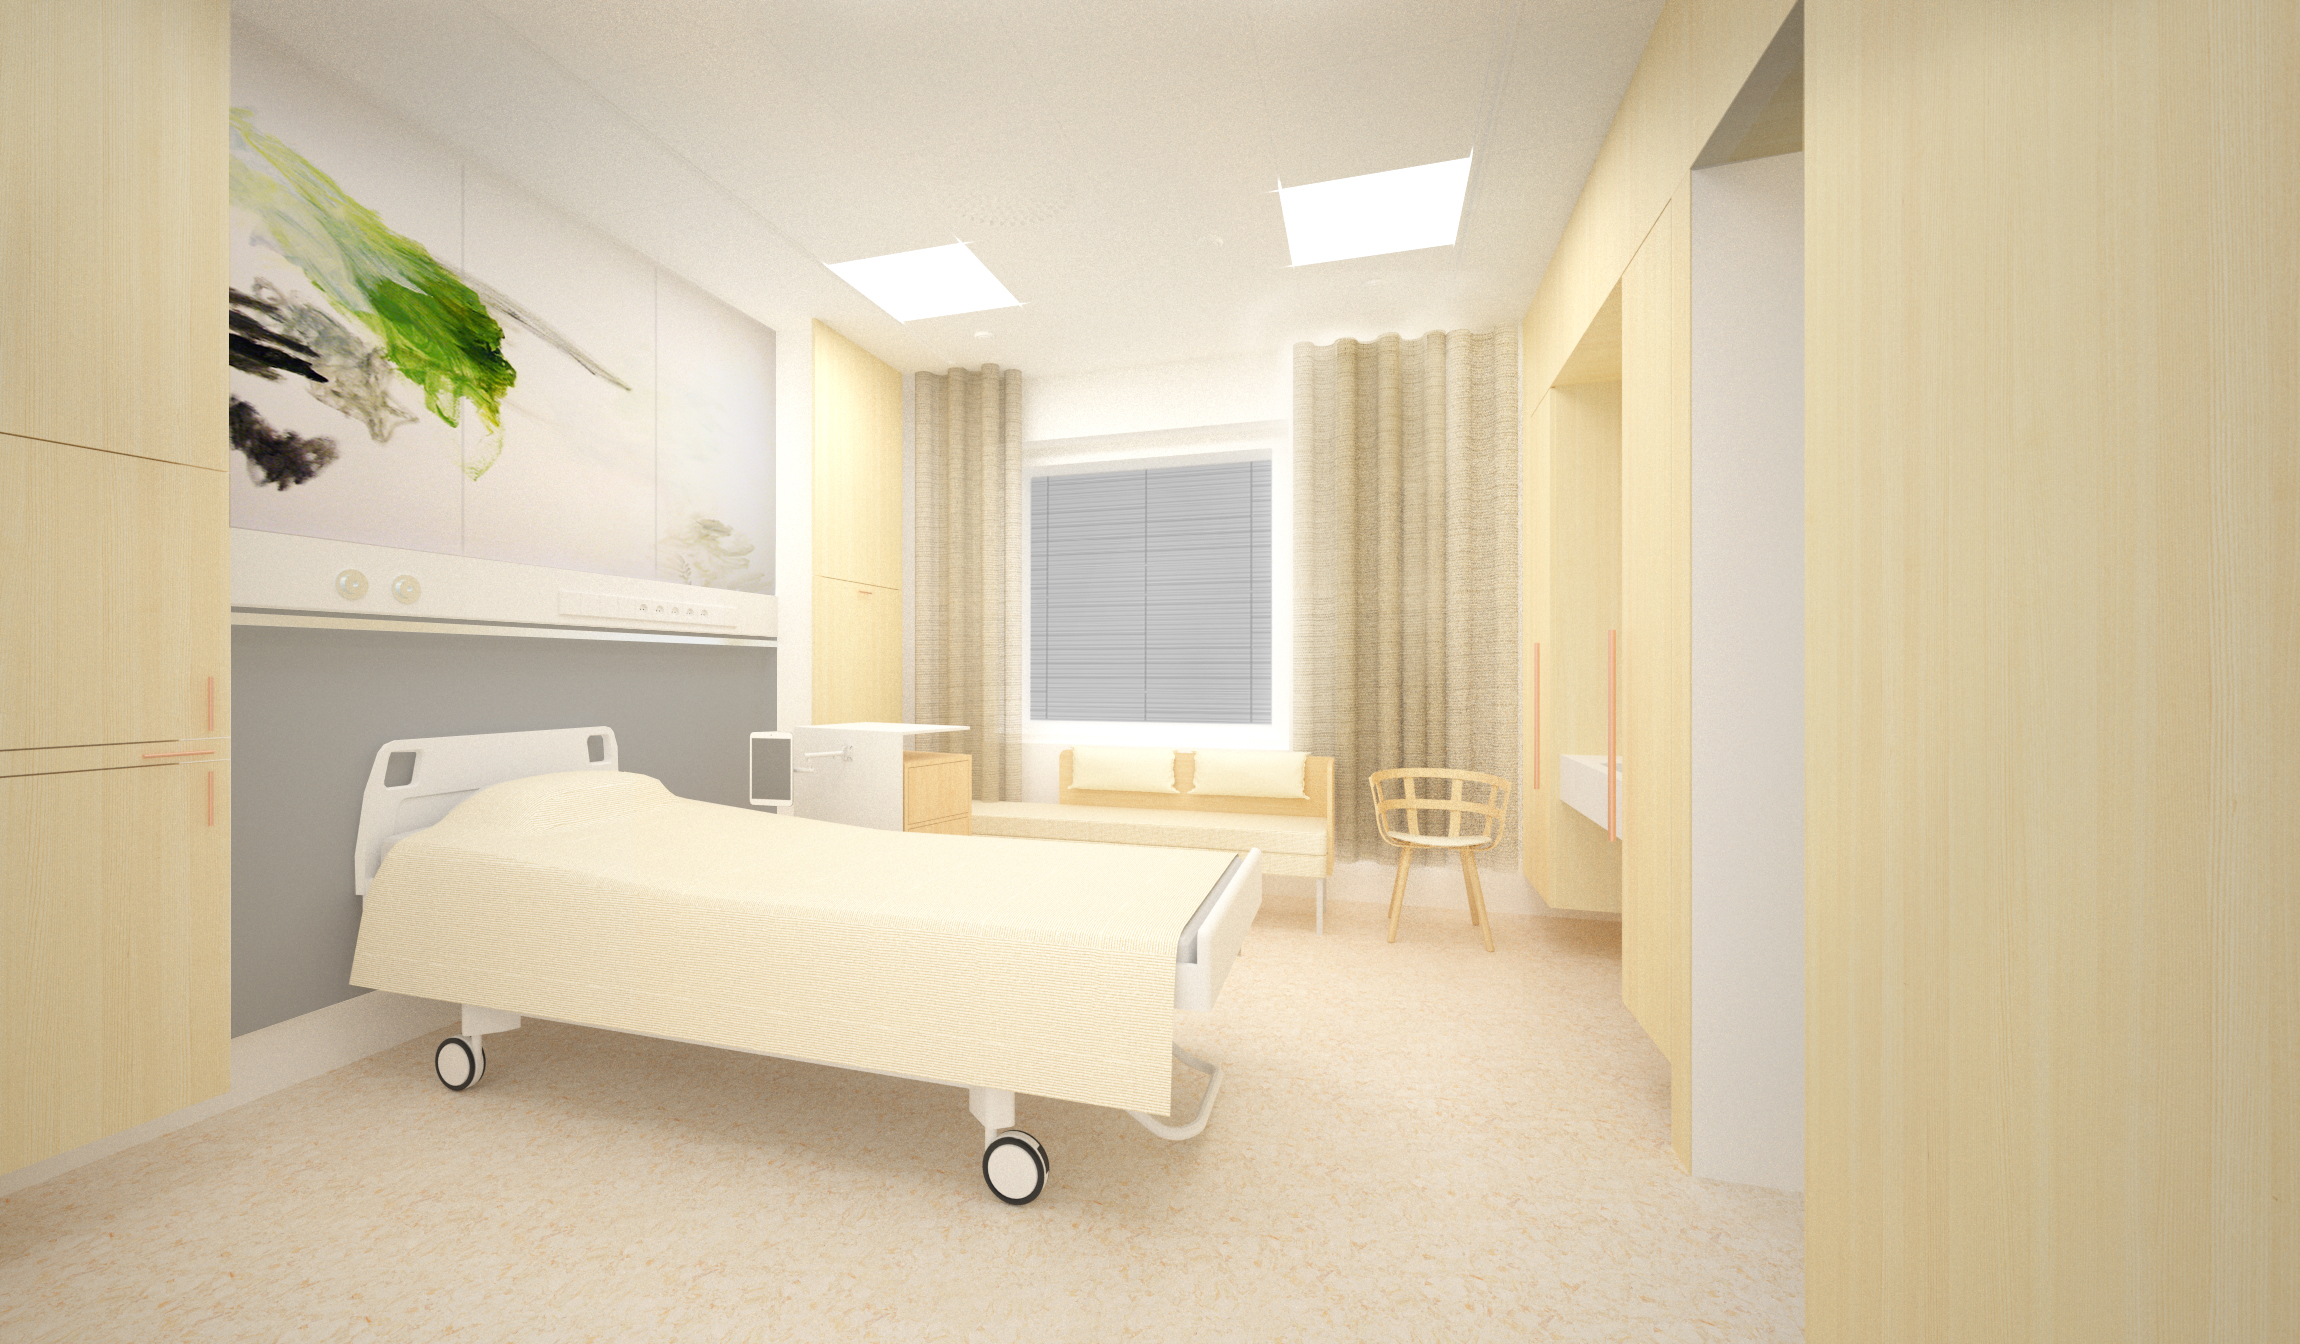 Kaisa Takala is currently designing the interior for Central Hospital in Jyväskylä, in central Finland. Courtesy JKMM Architects